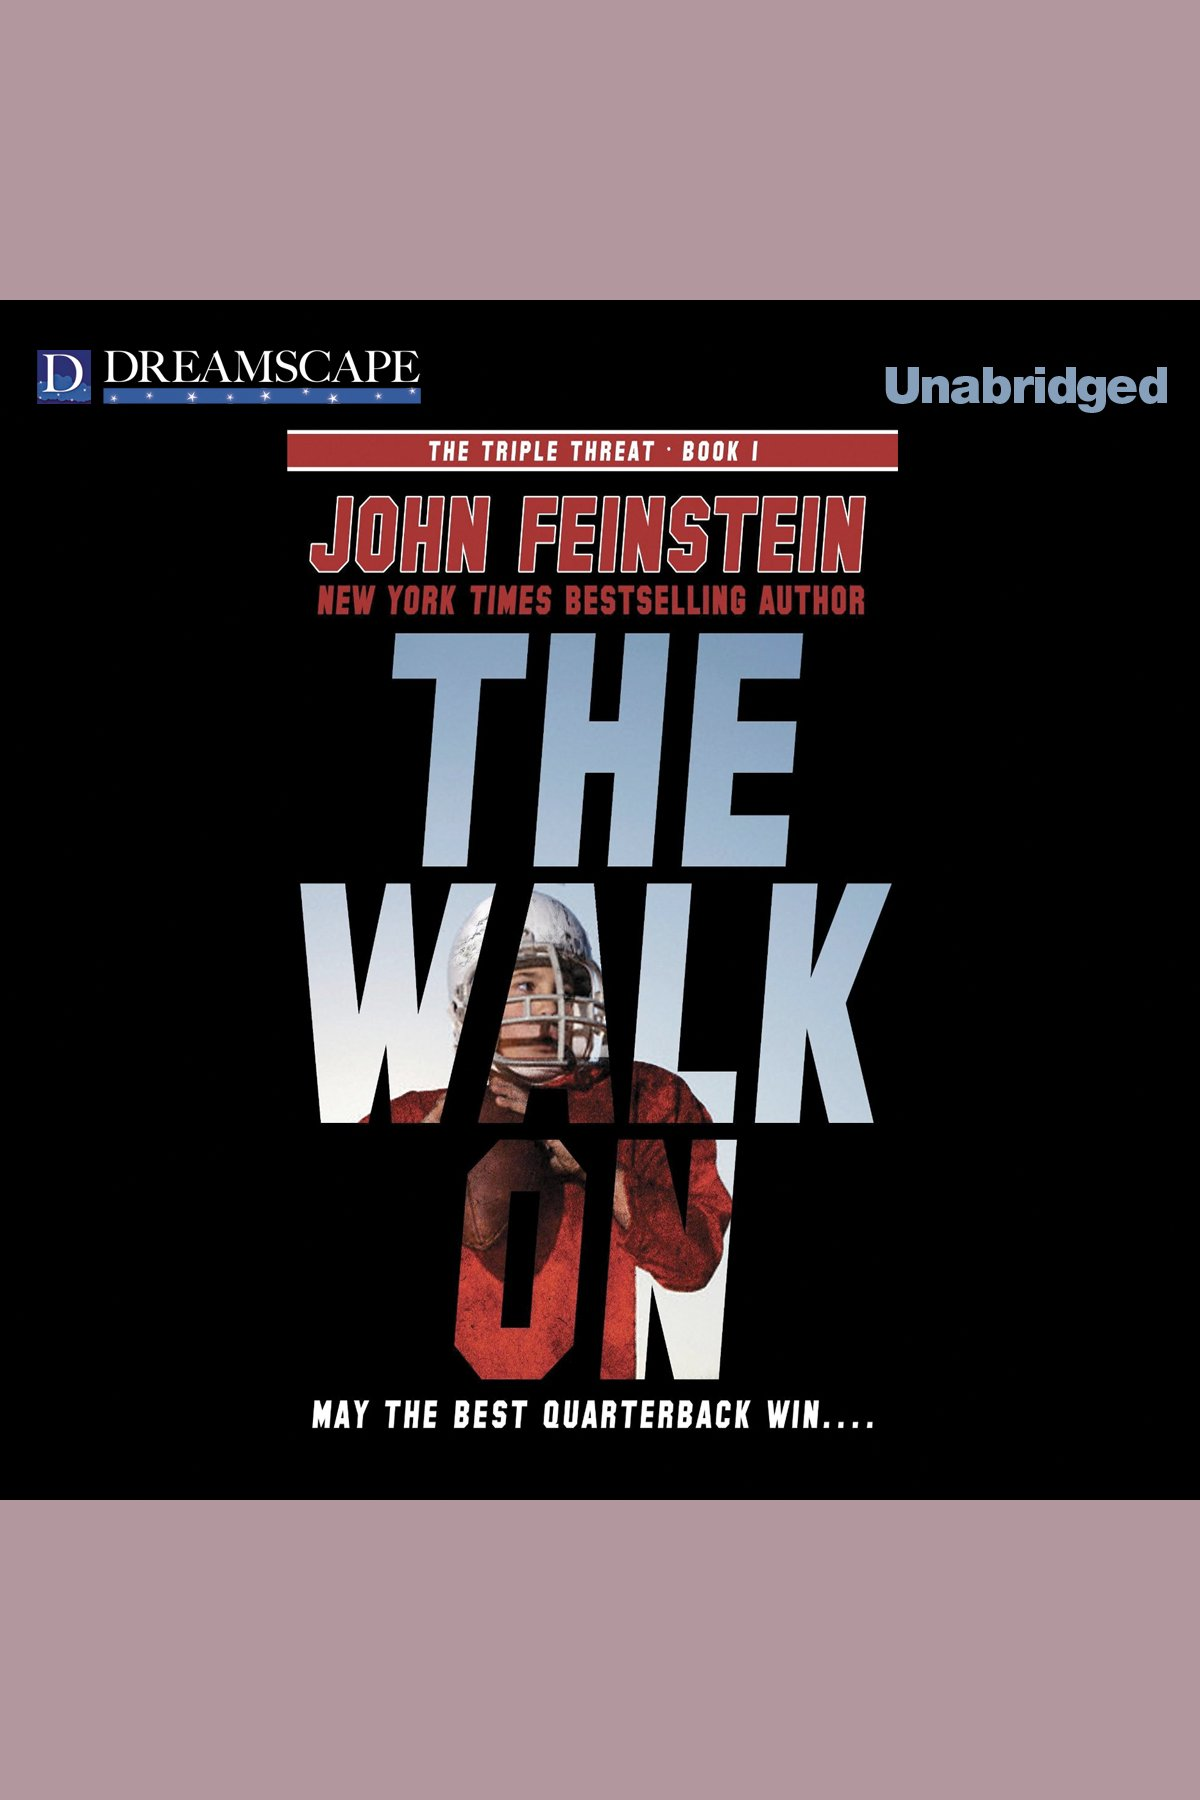 The walk on cover image